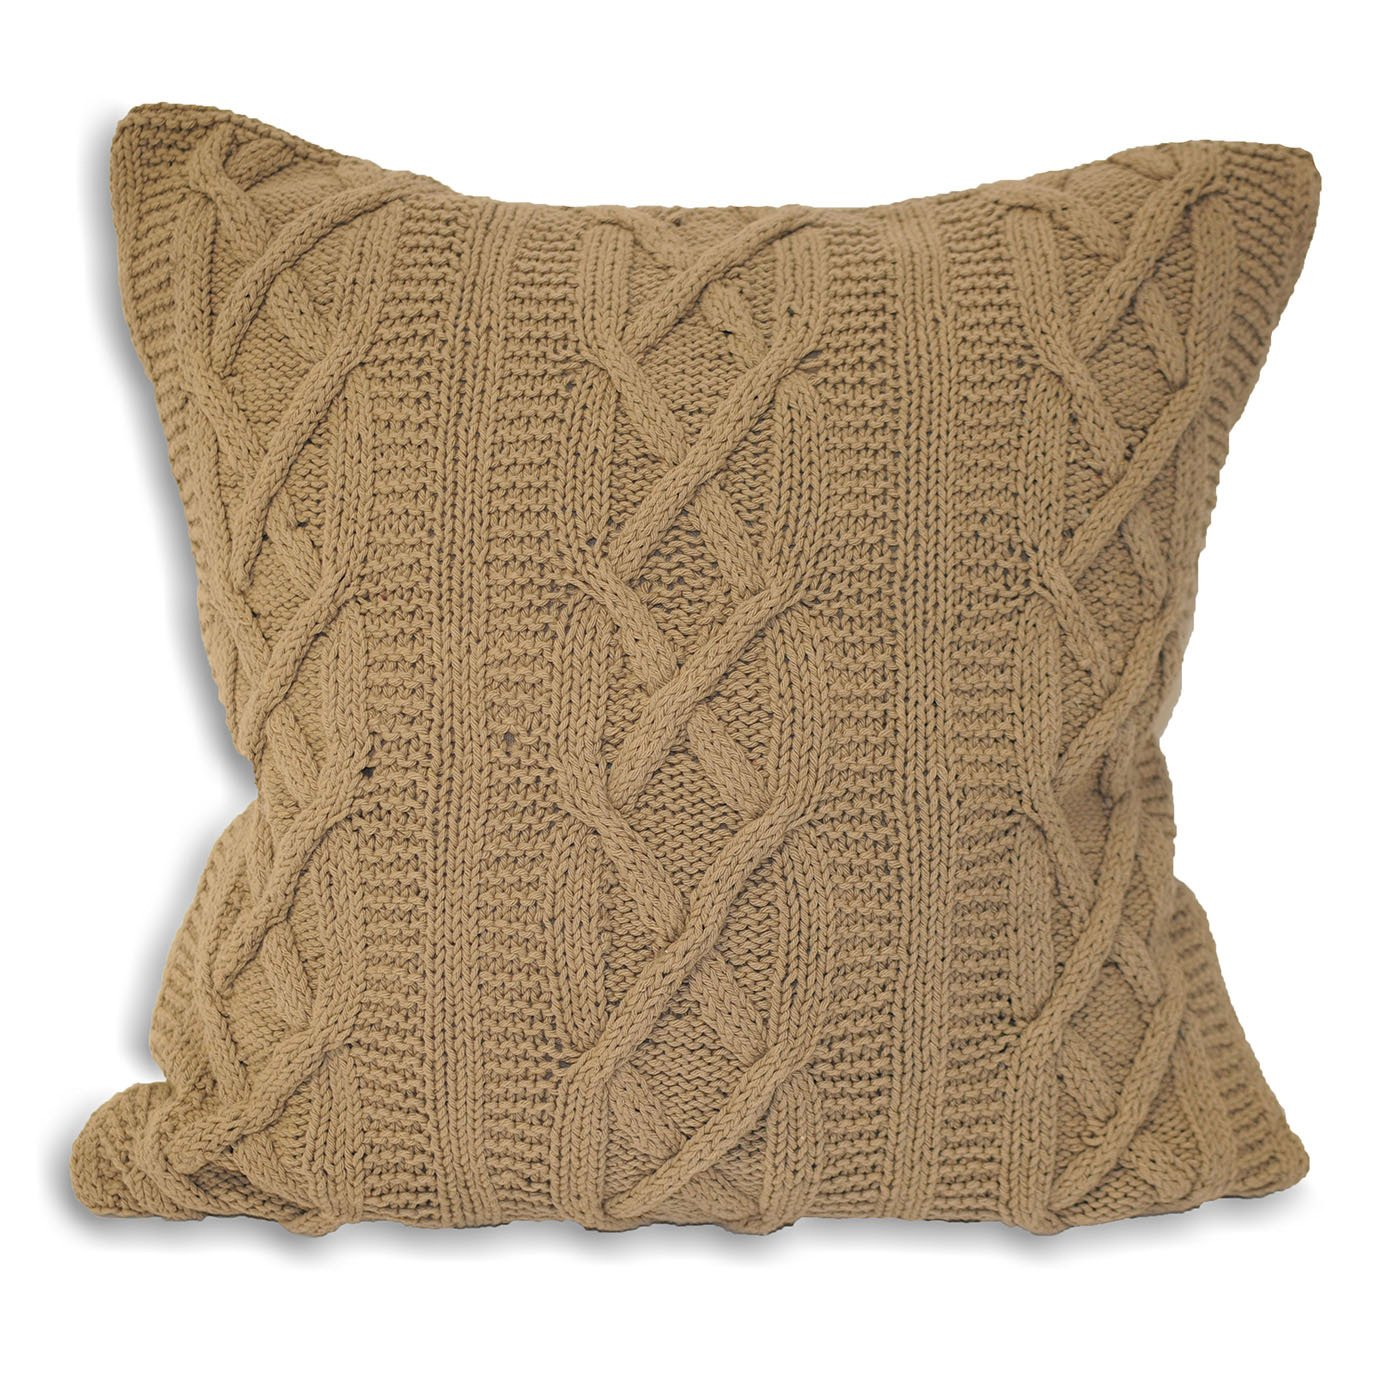 Aran Knitted Cushion Cover Mushroom 55 x 55 Cm Amazon